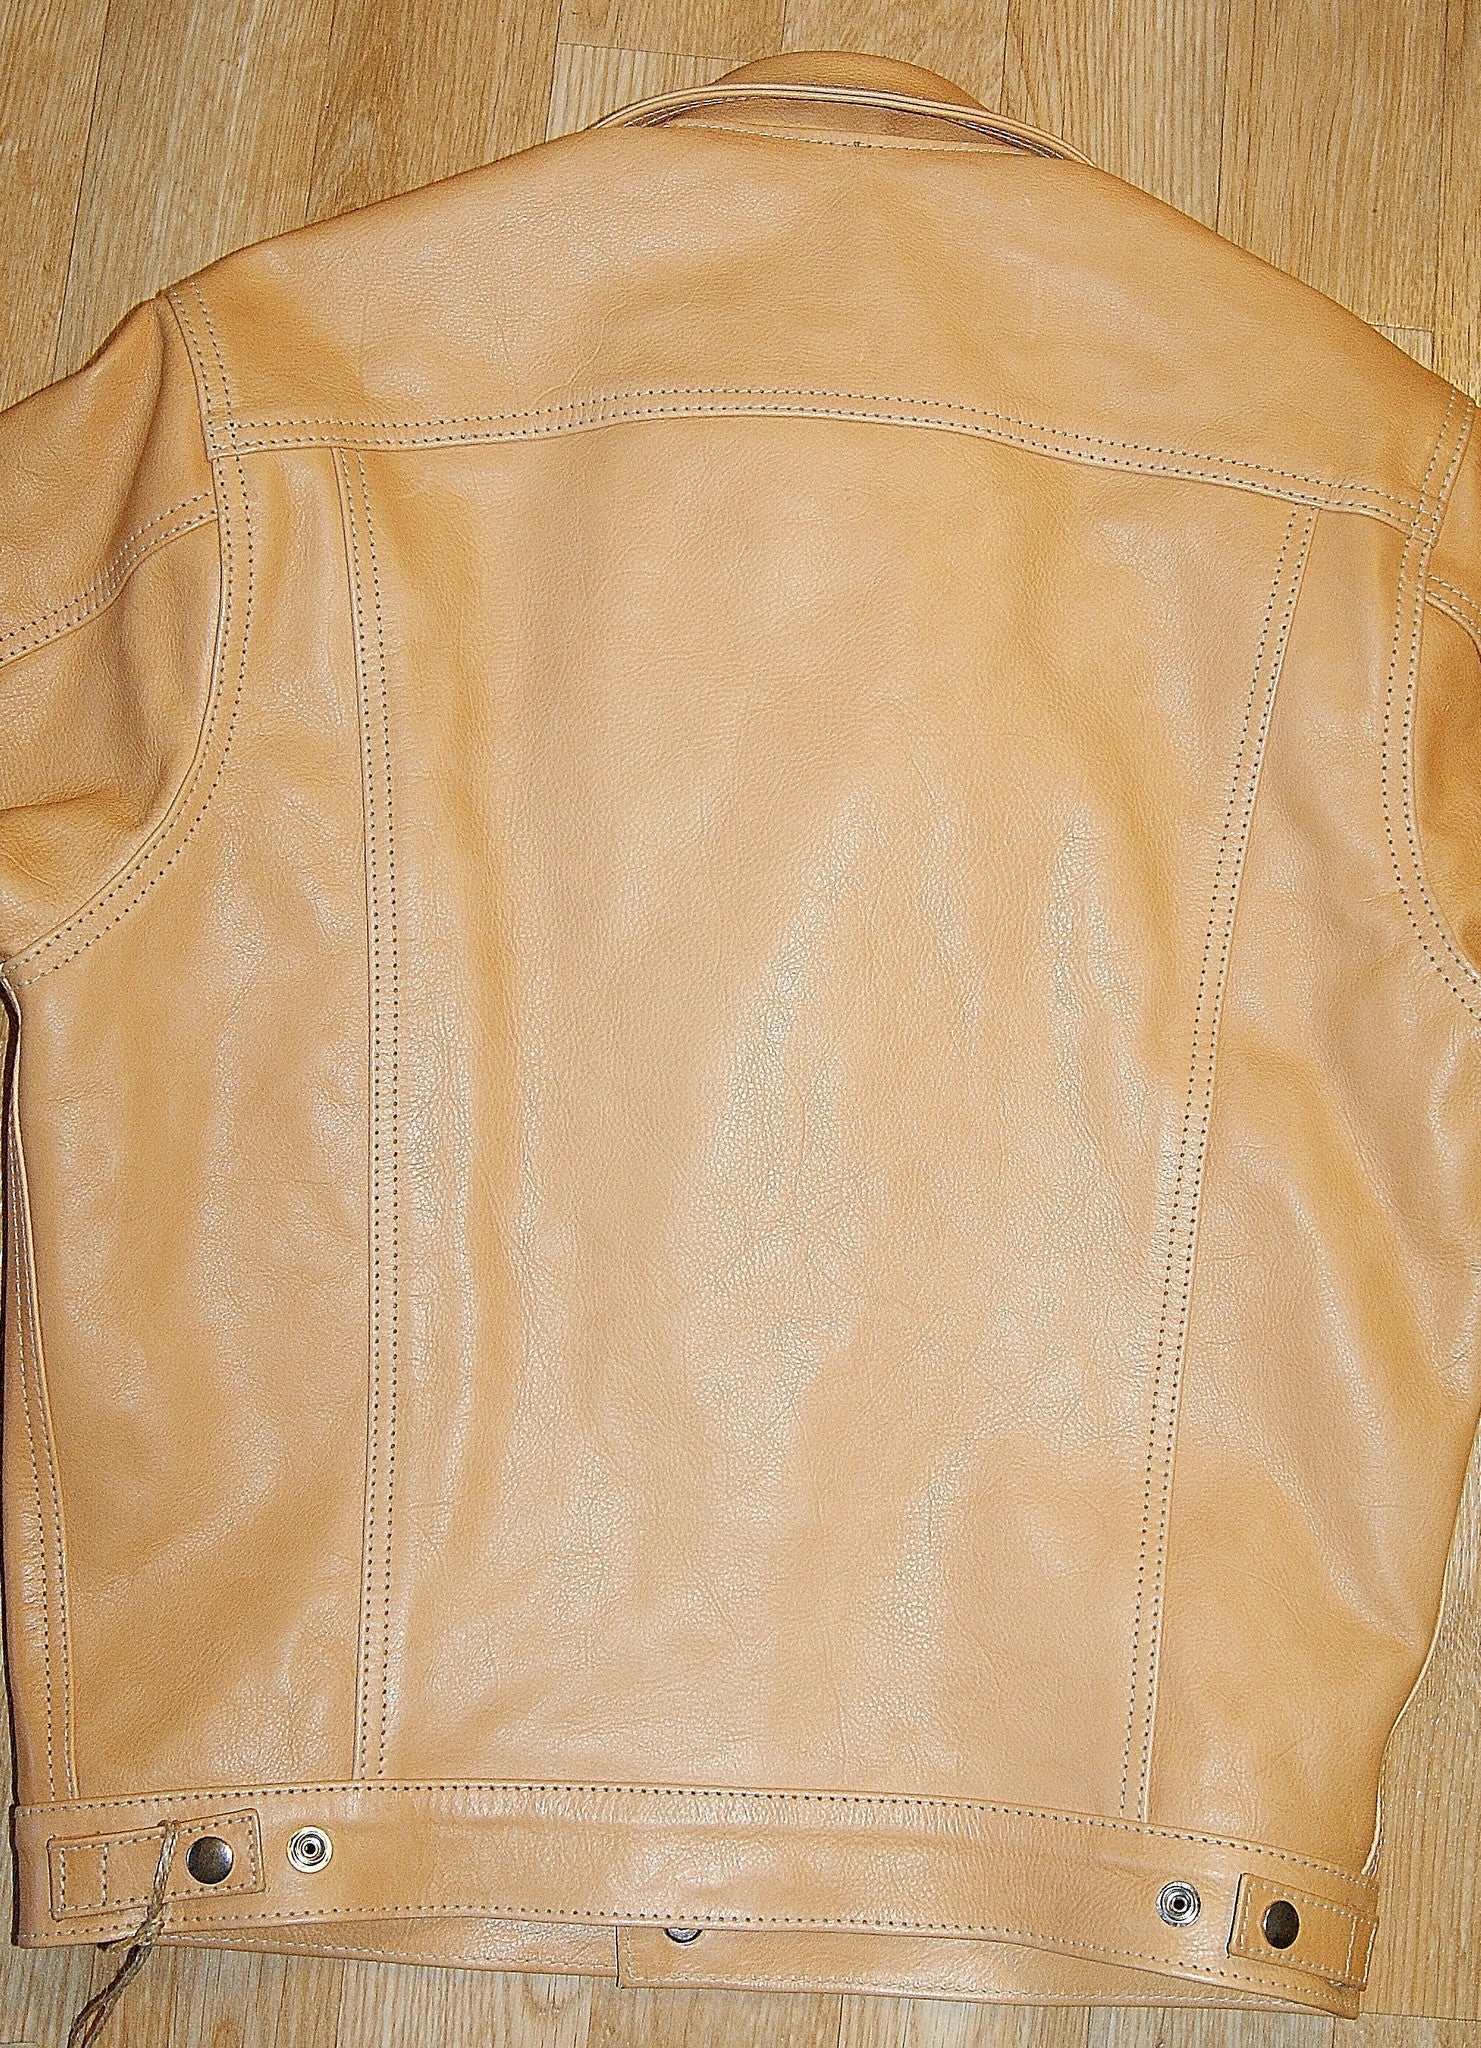 Aero Type 3 Jean Jacket, size 38, Natural Vicenza Horsehide